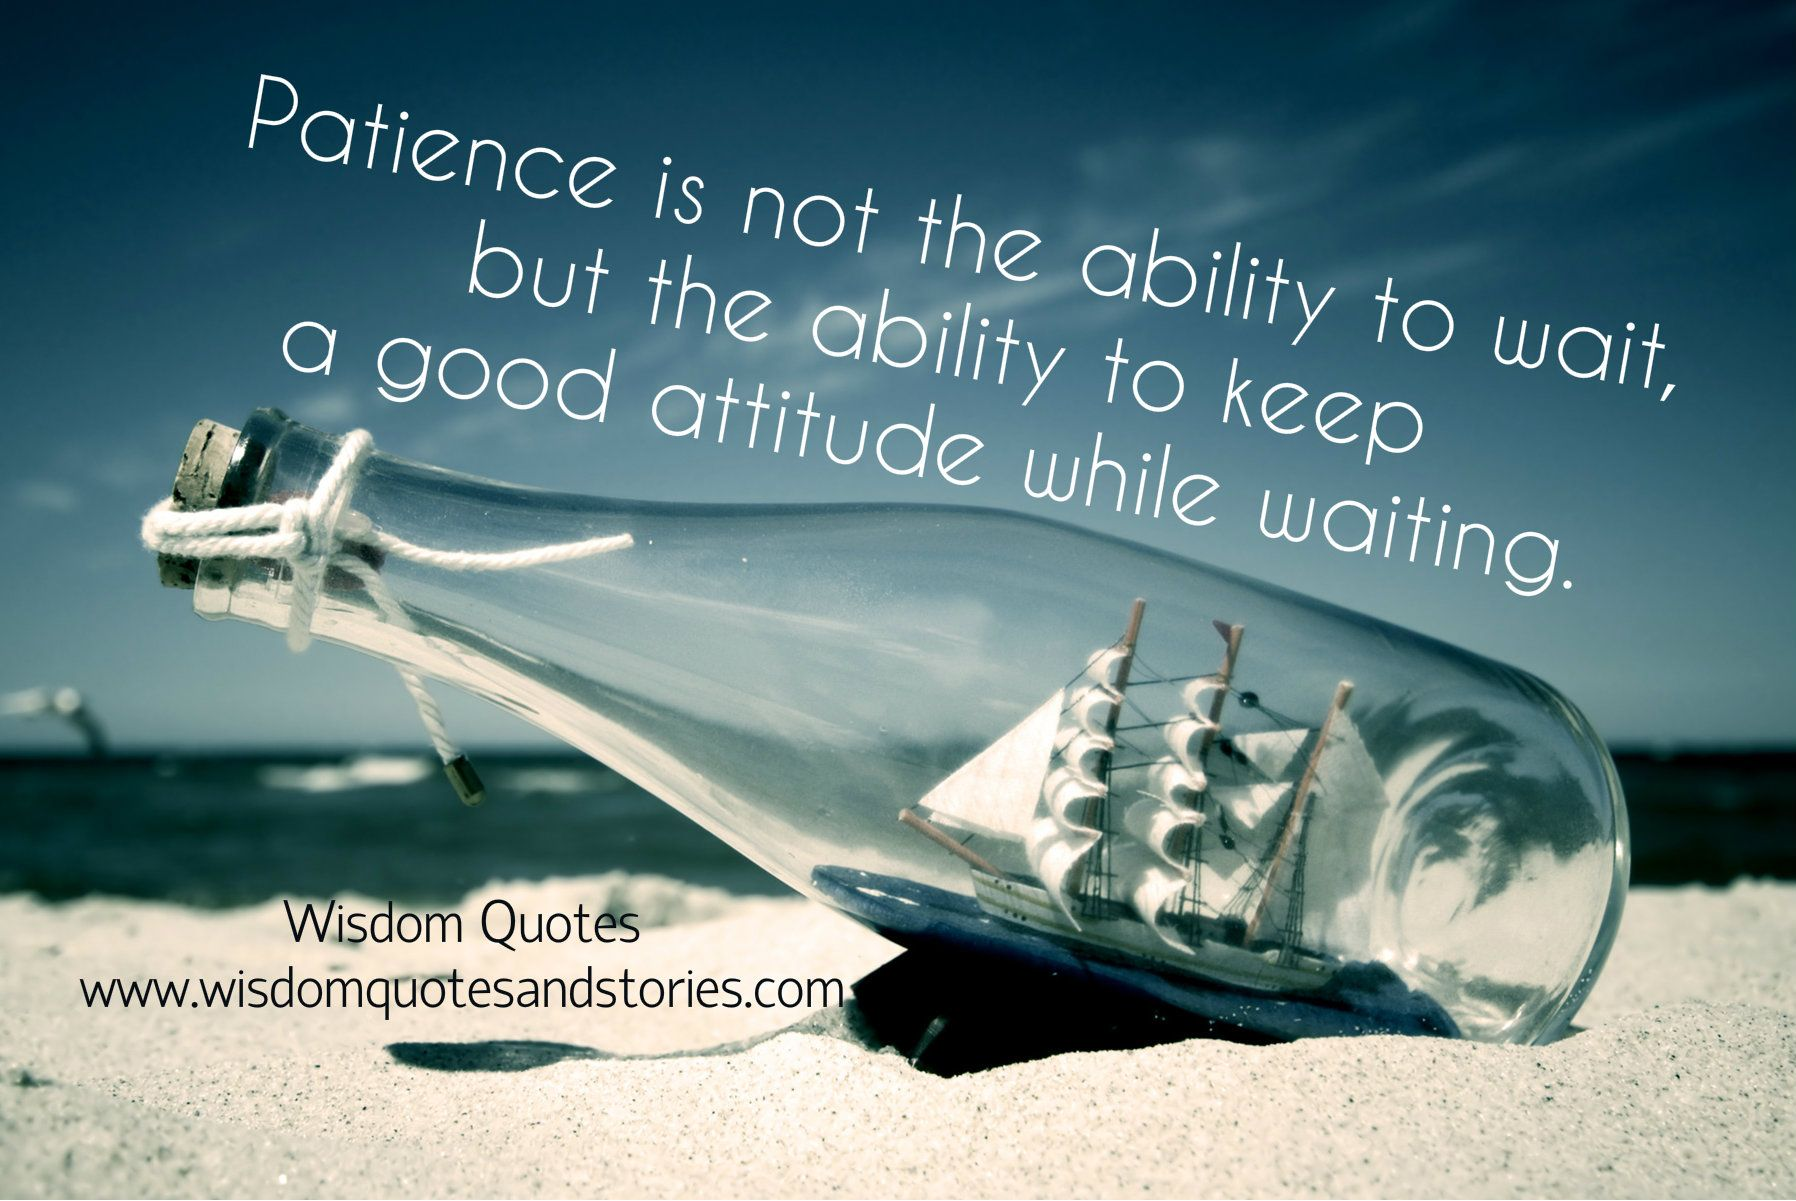 Keep Good Attitude While Waiting | Wisdom Quotes U0026 Stories · Desktop  WallpapersLatest Hd ...